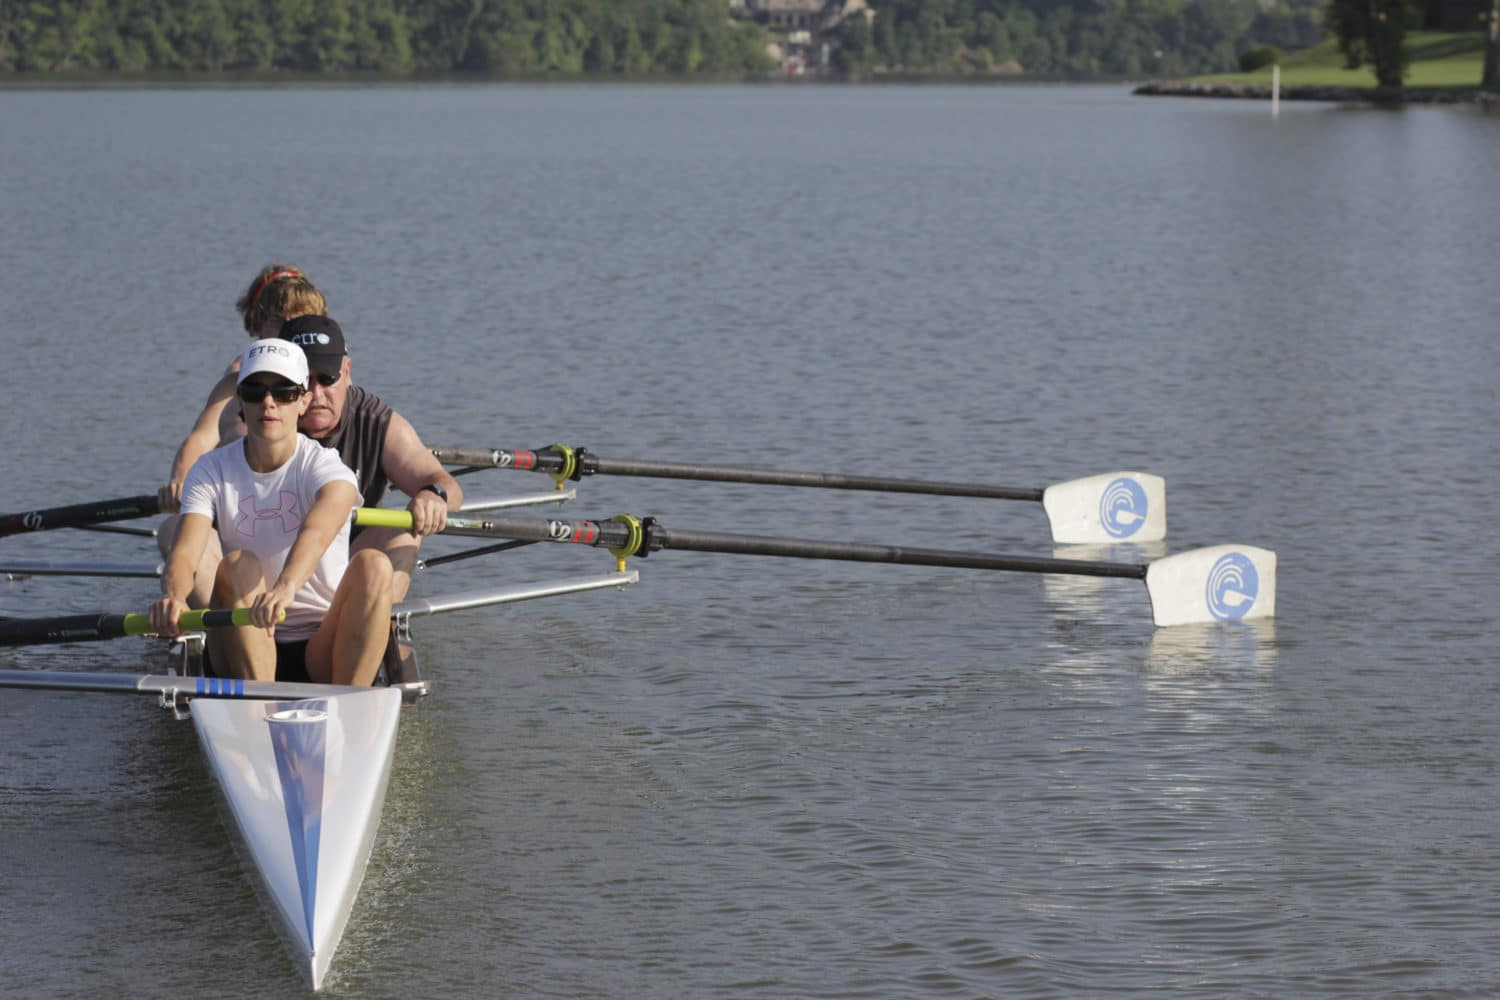 East Tennessee Rowing